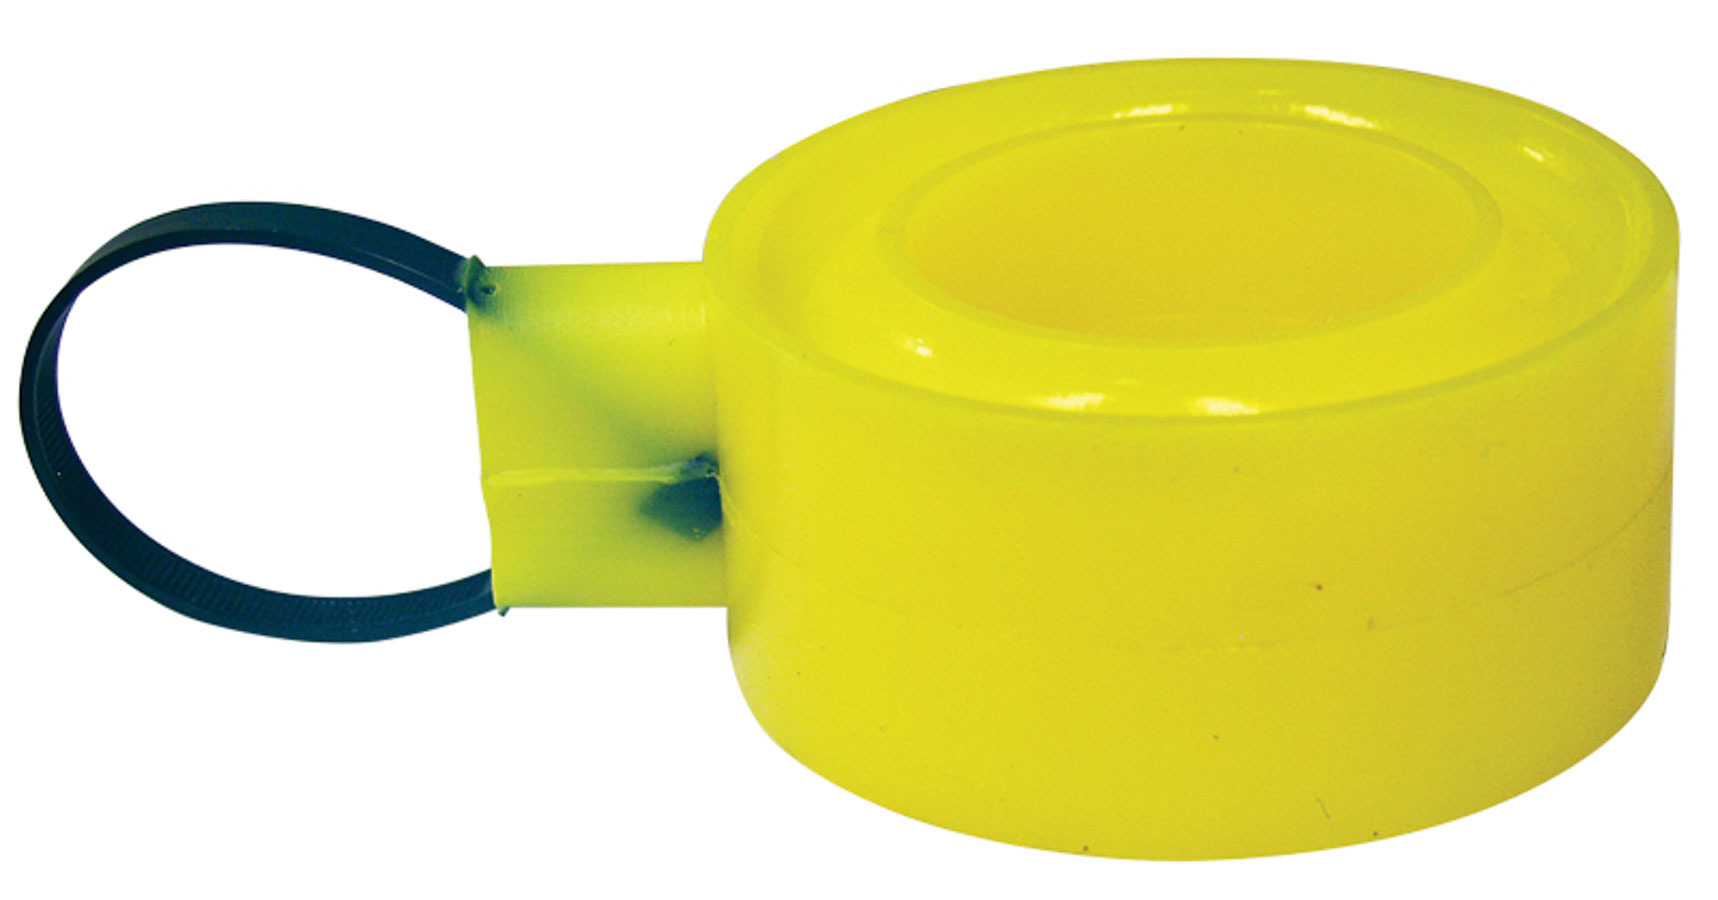 Spring Rubber C/O Soft Yellow 1-1/4in Tall